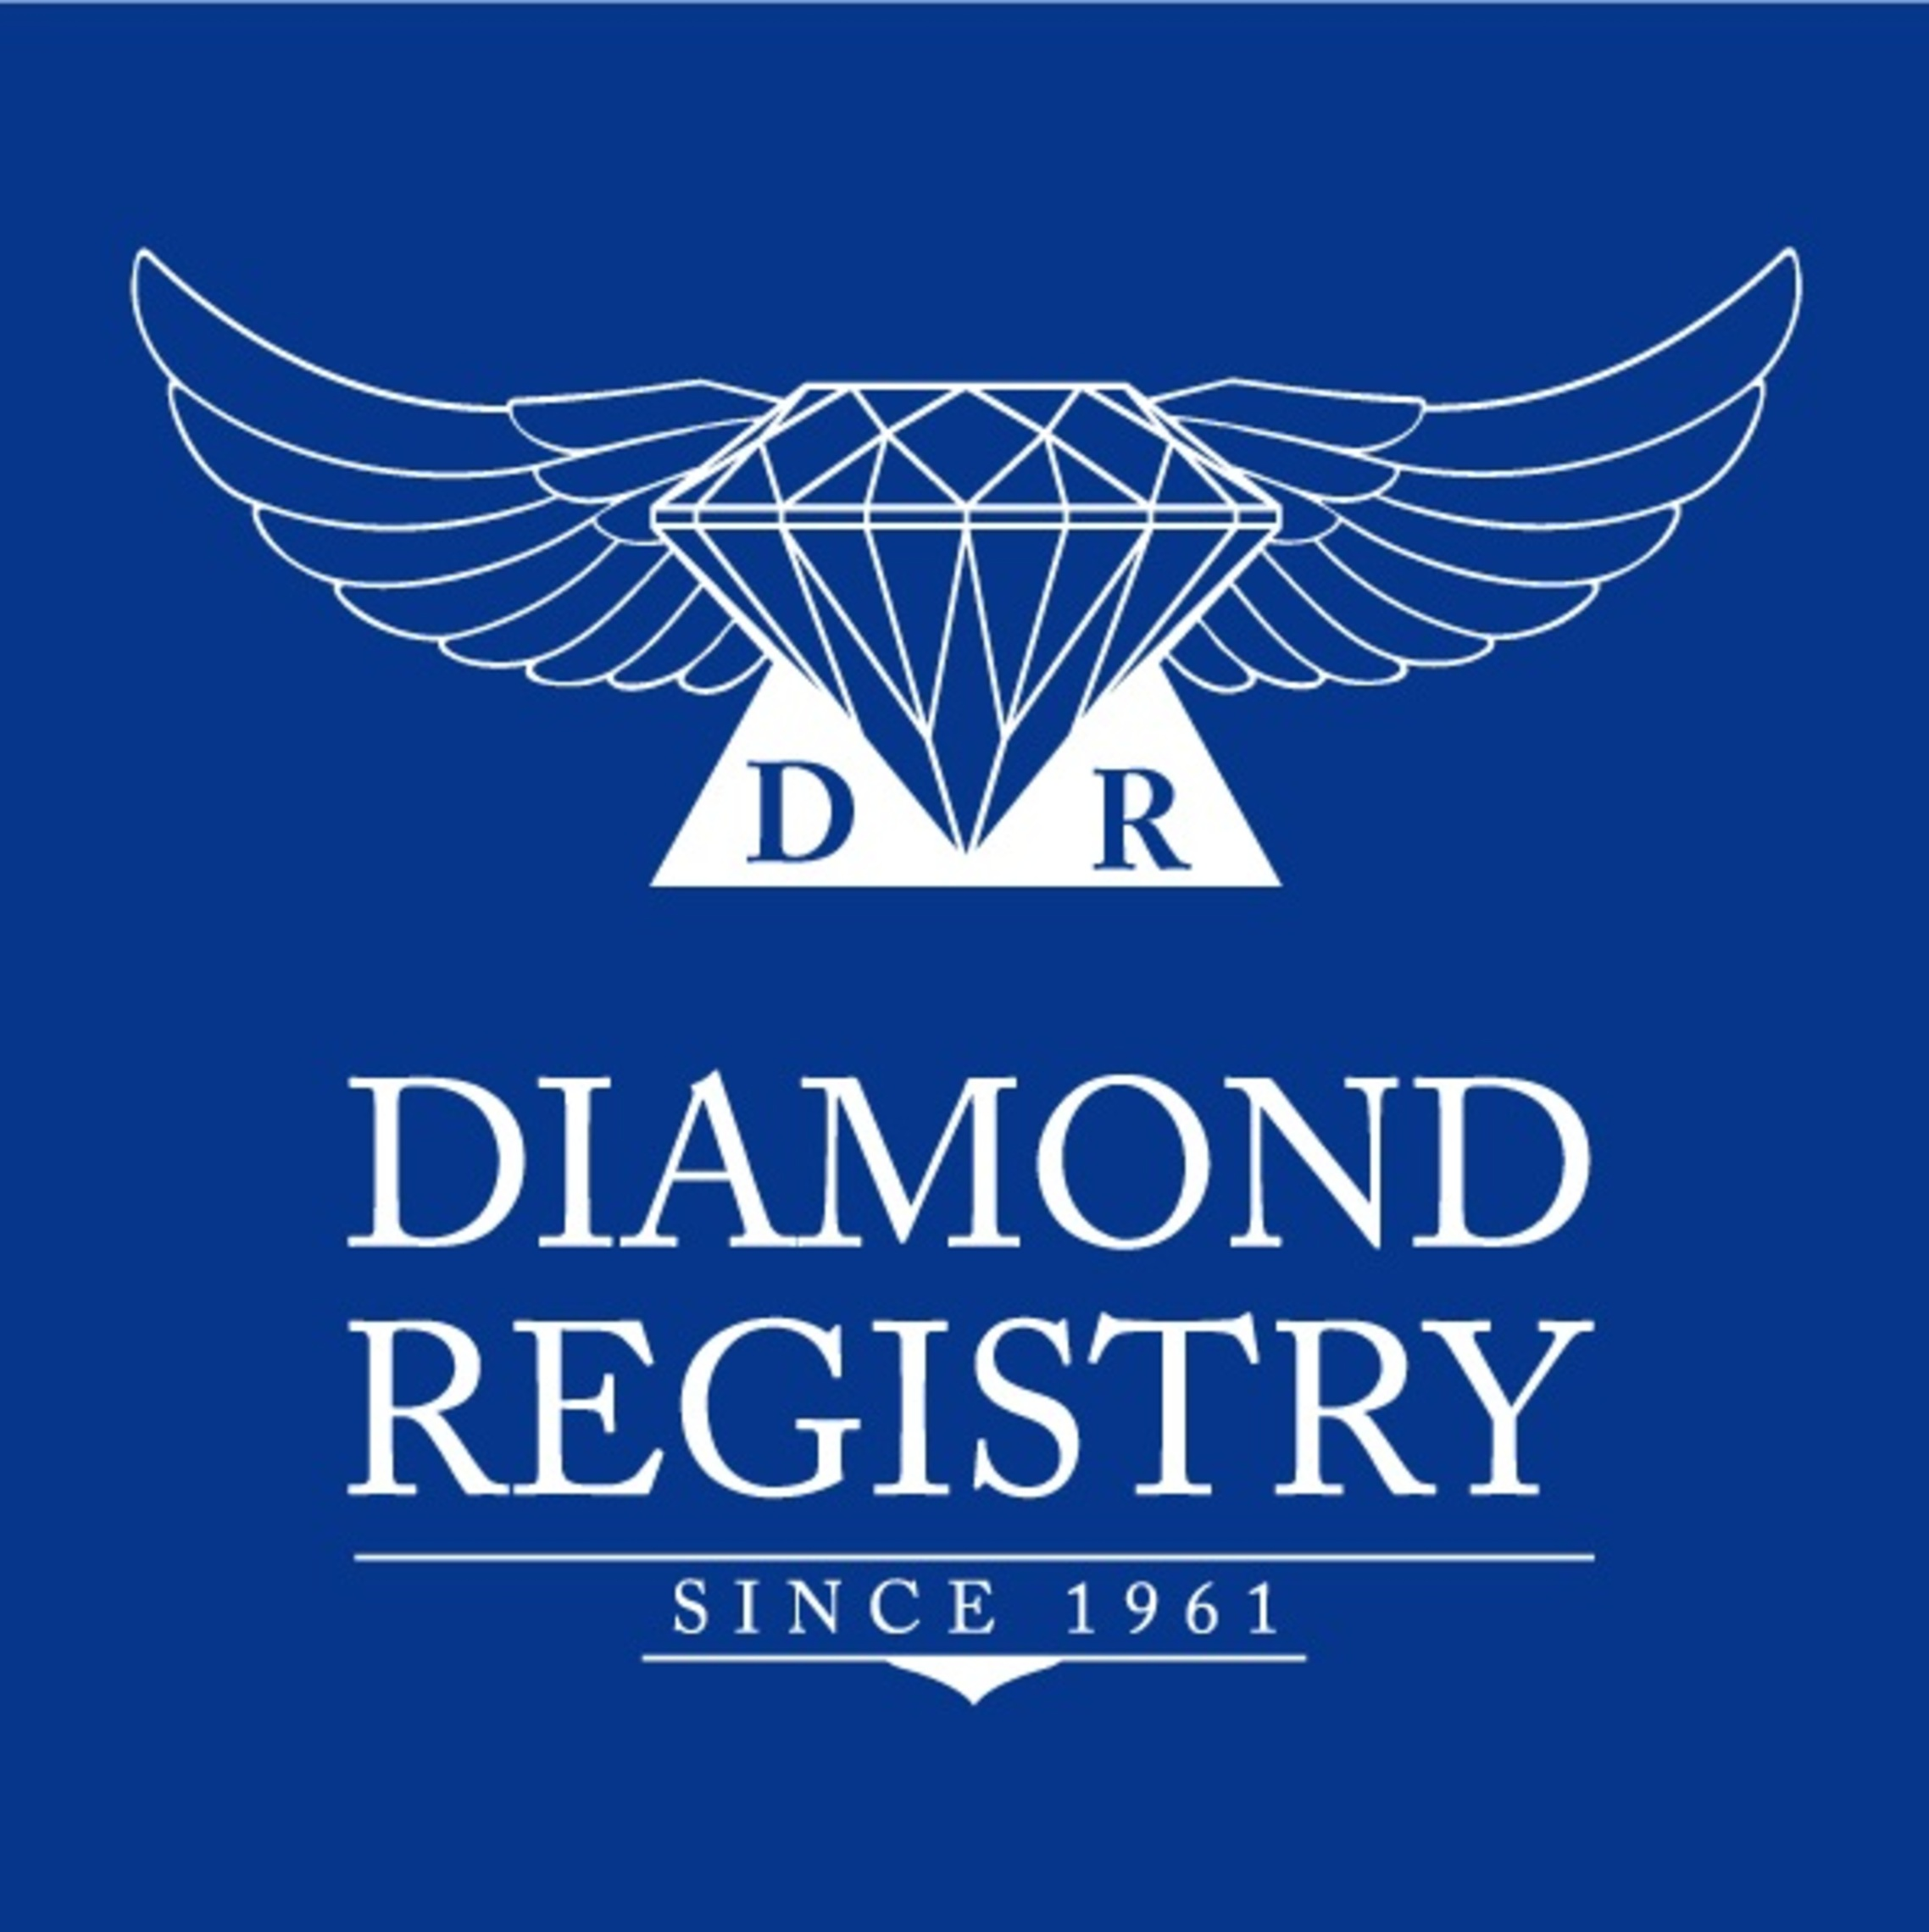 diamond registry- company logo